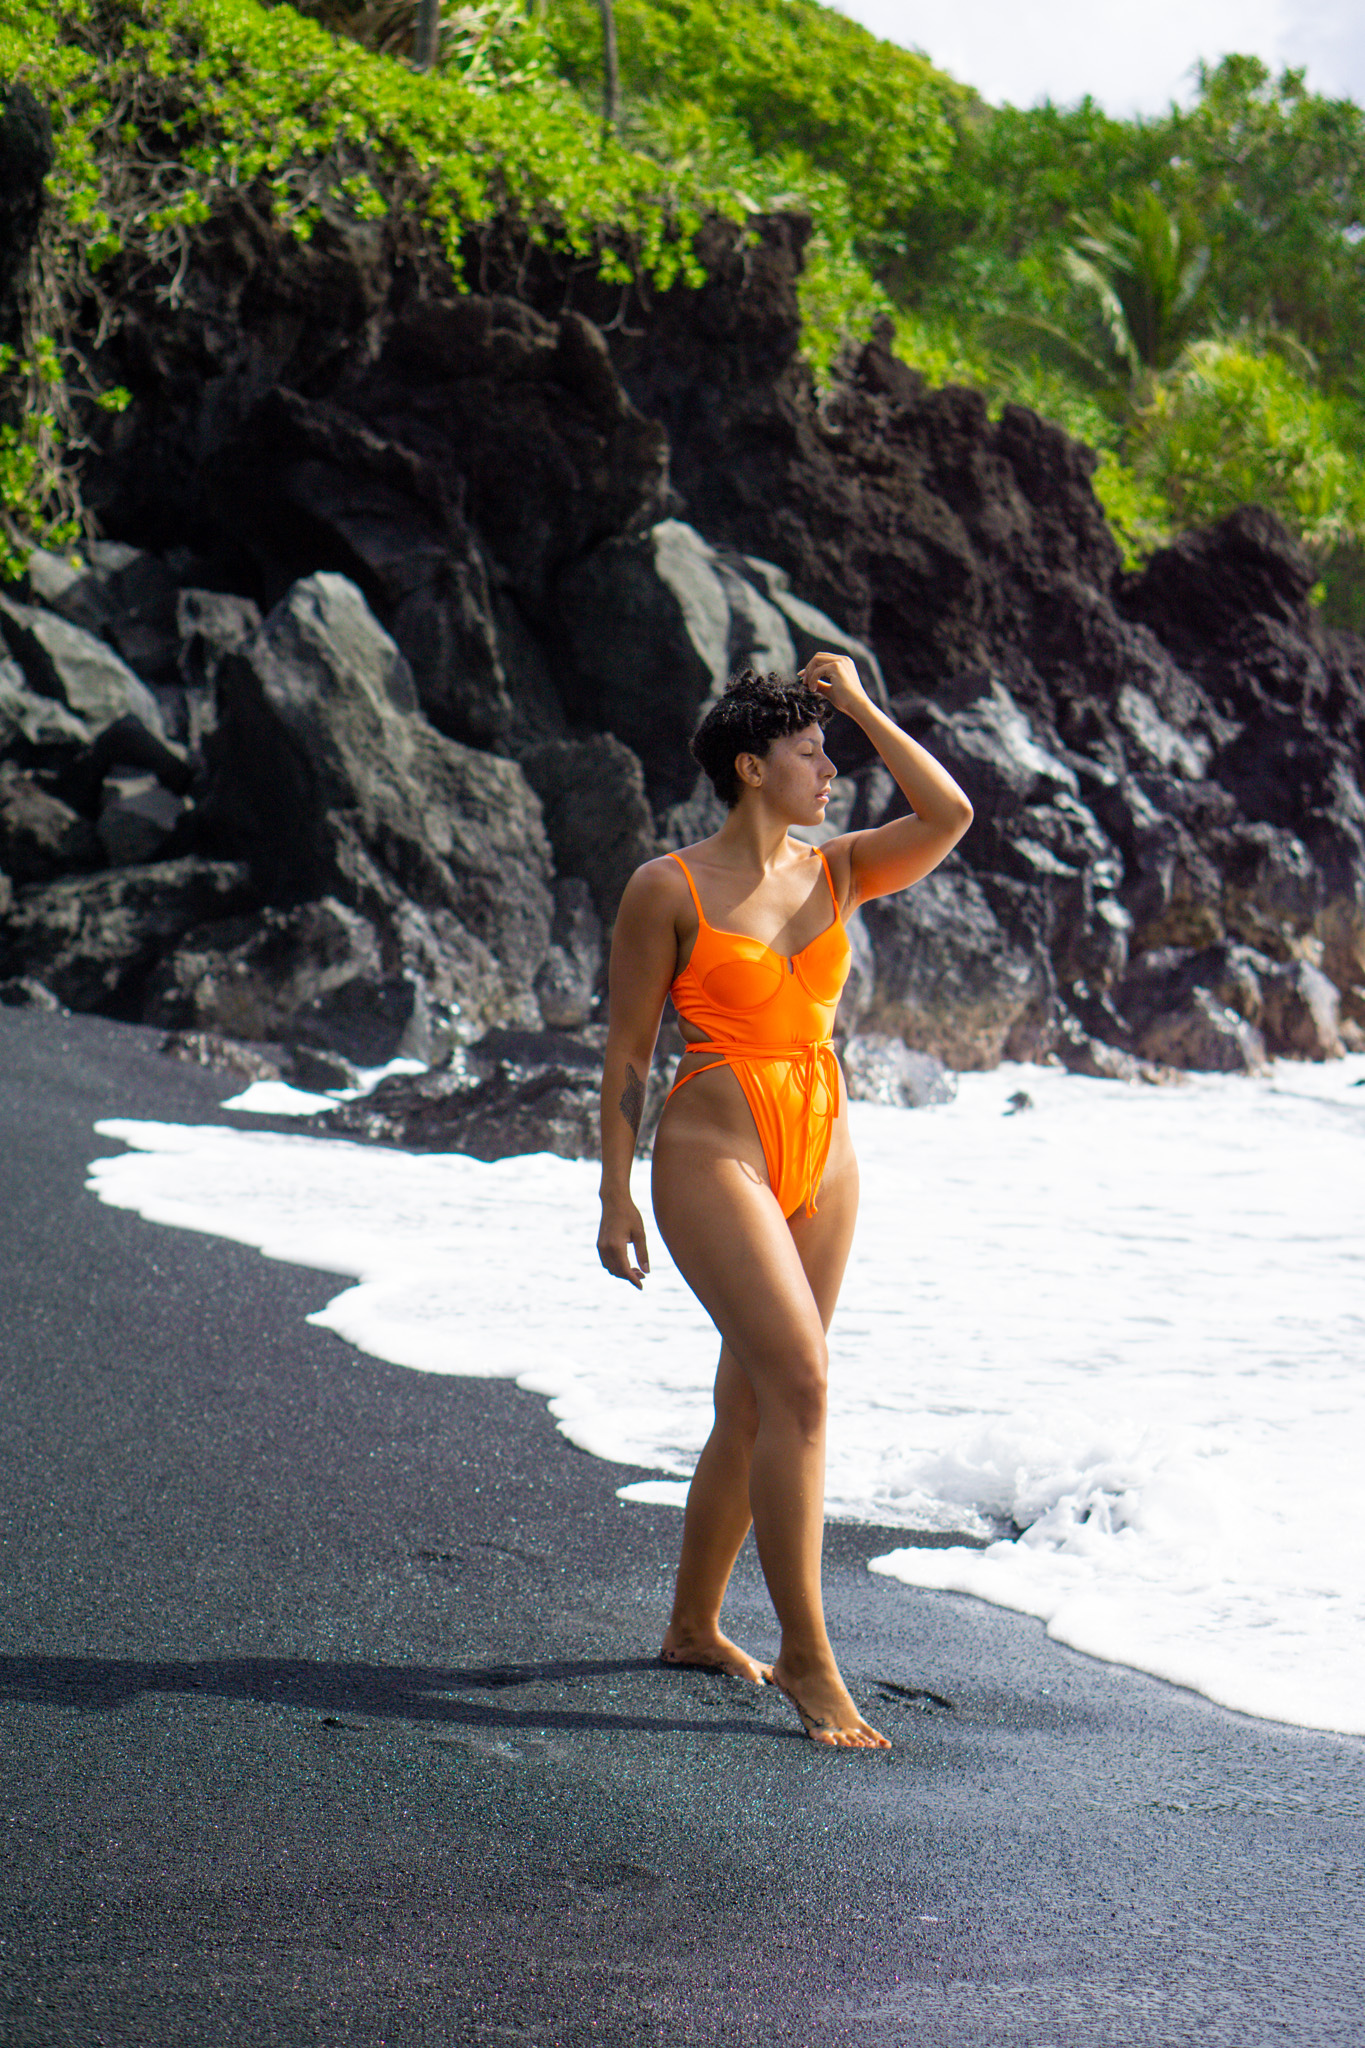 traveling to hawaii maui, where to stop on the Road to Hana hawaii maui, maui covid travel, luxury travel, black girl travel guide, Waianapanapa State Park